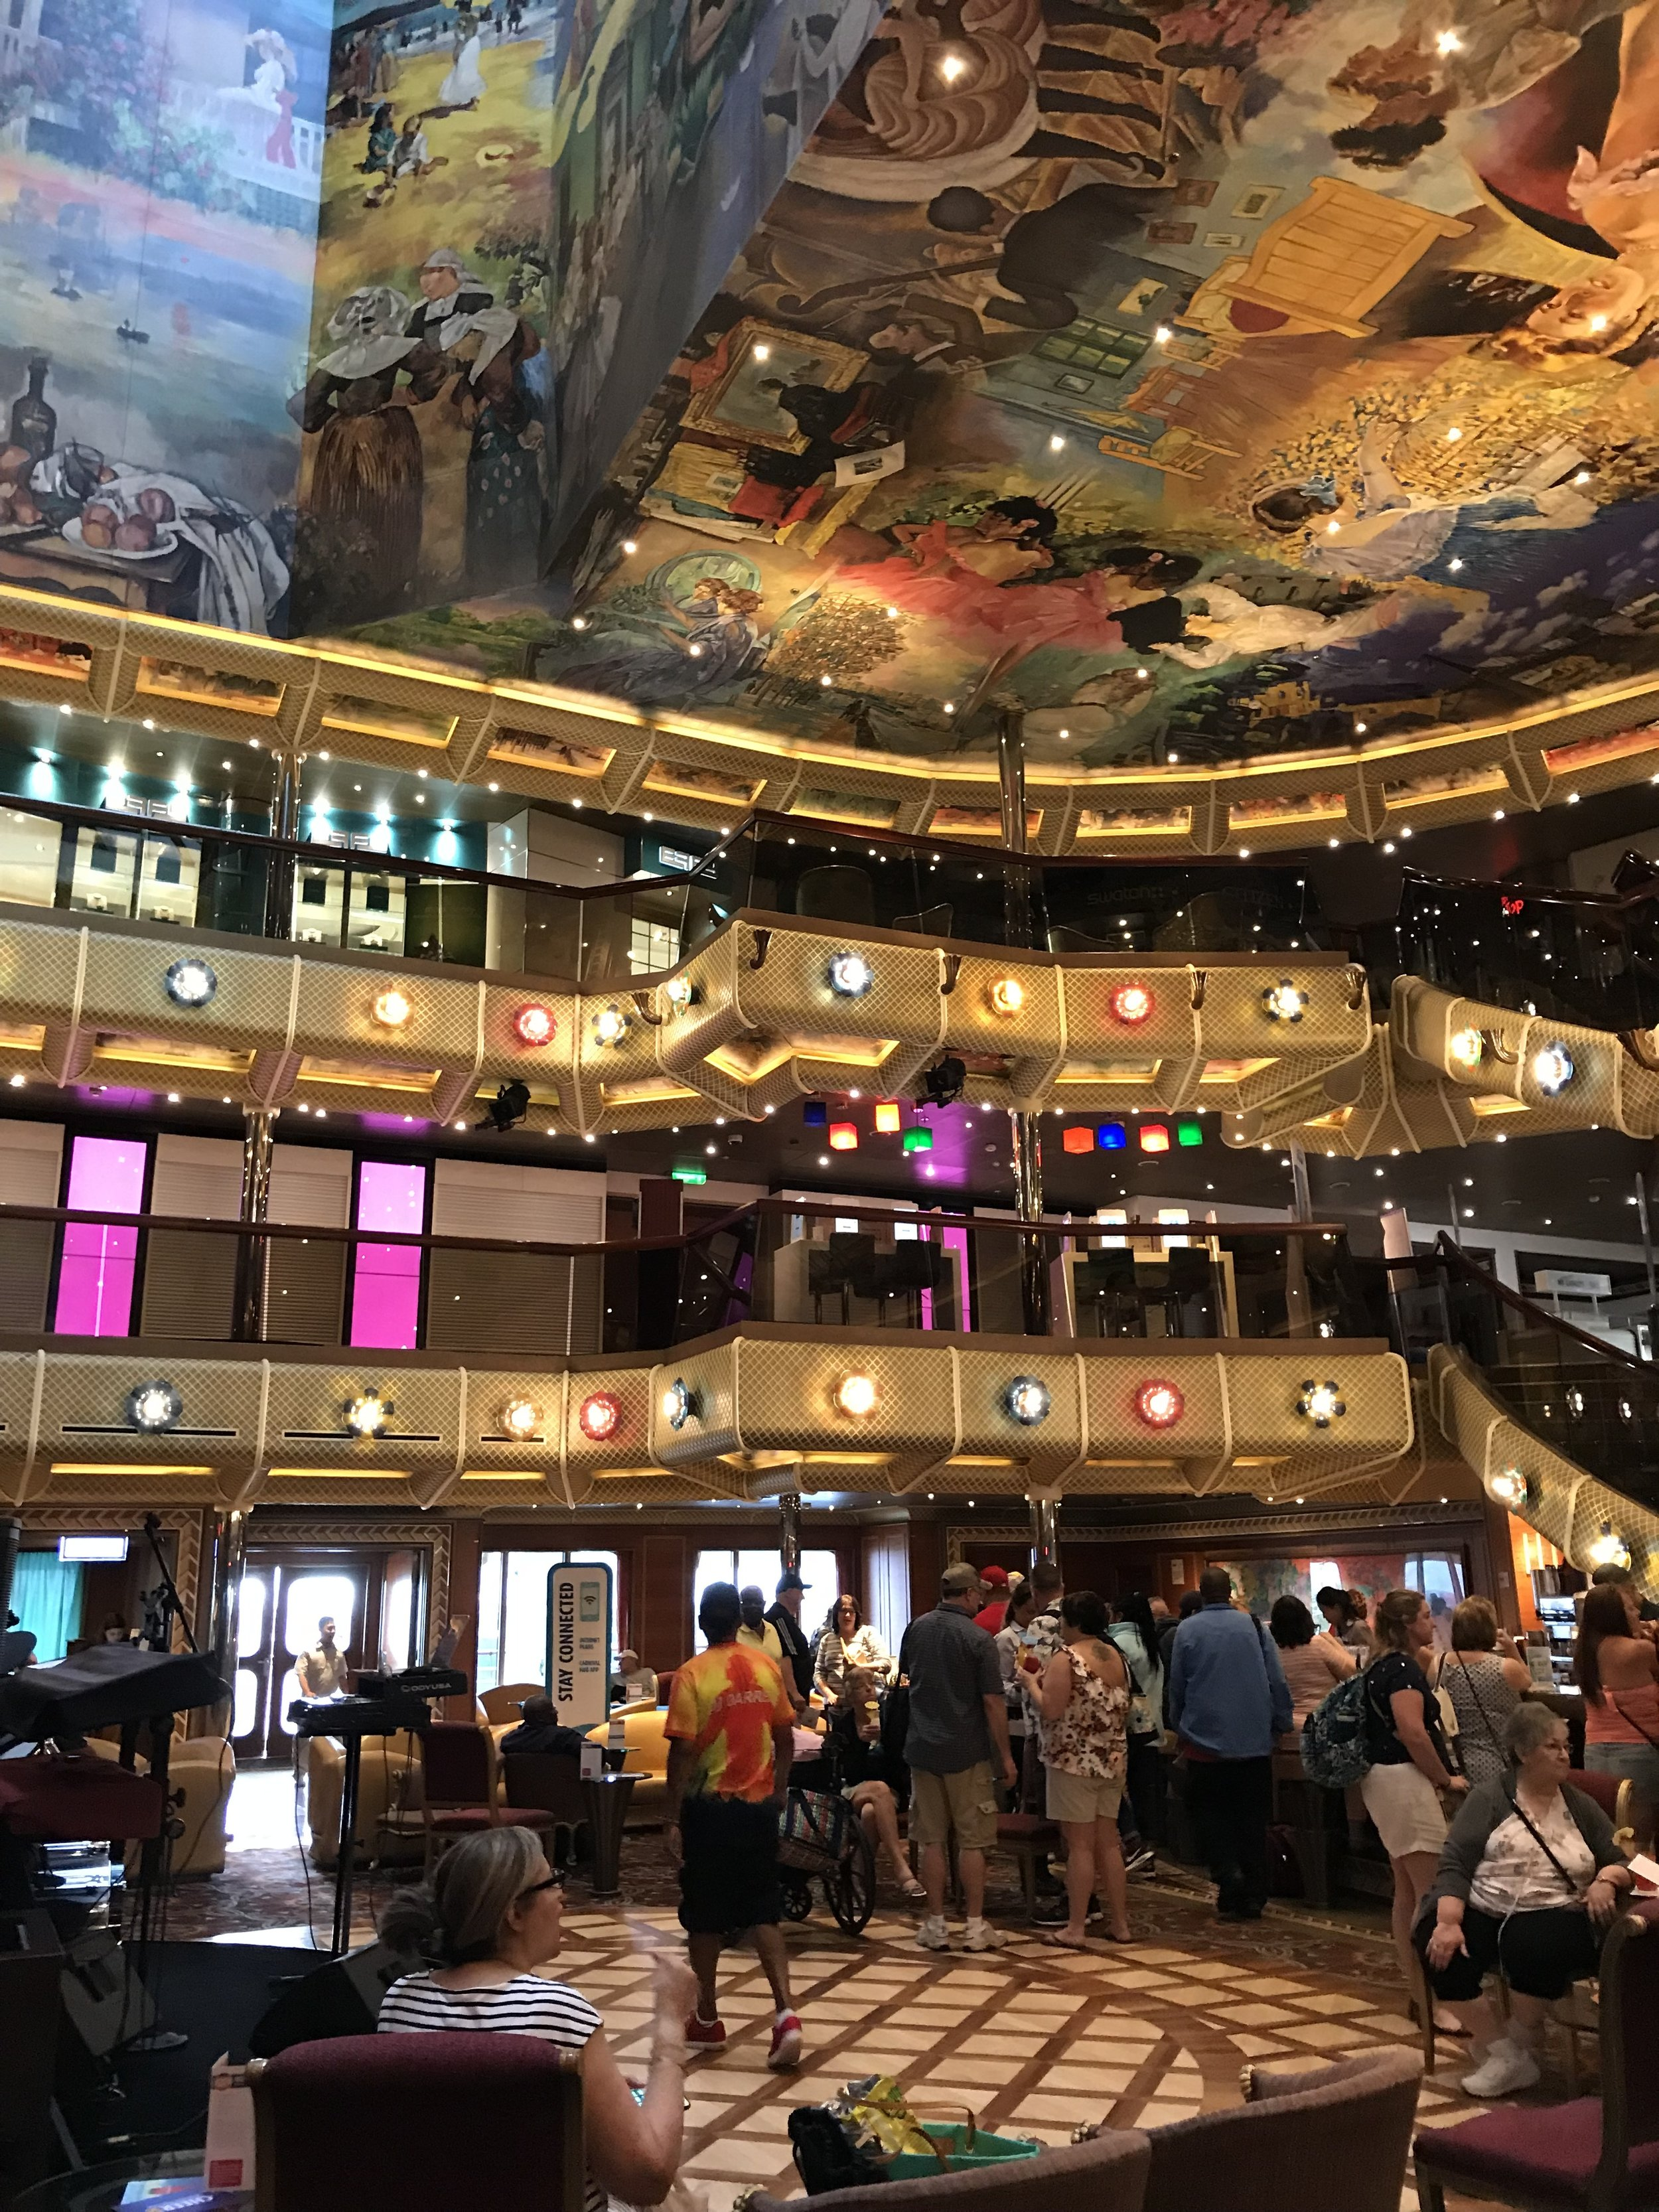 Look how gorgeous this Lobby is! Beautiful art up top and an awesome party below!